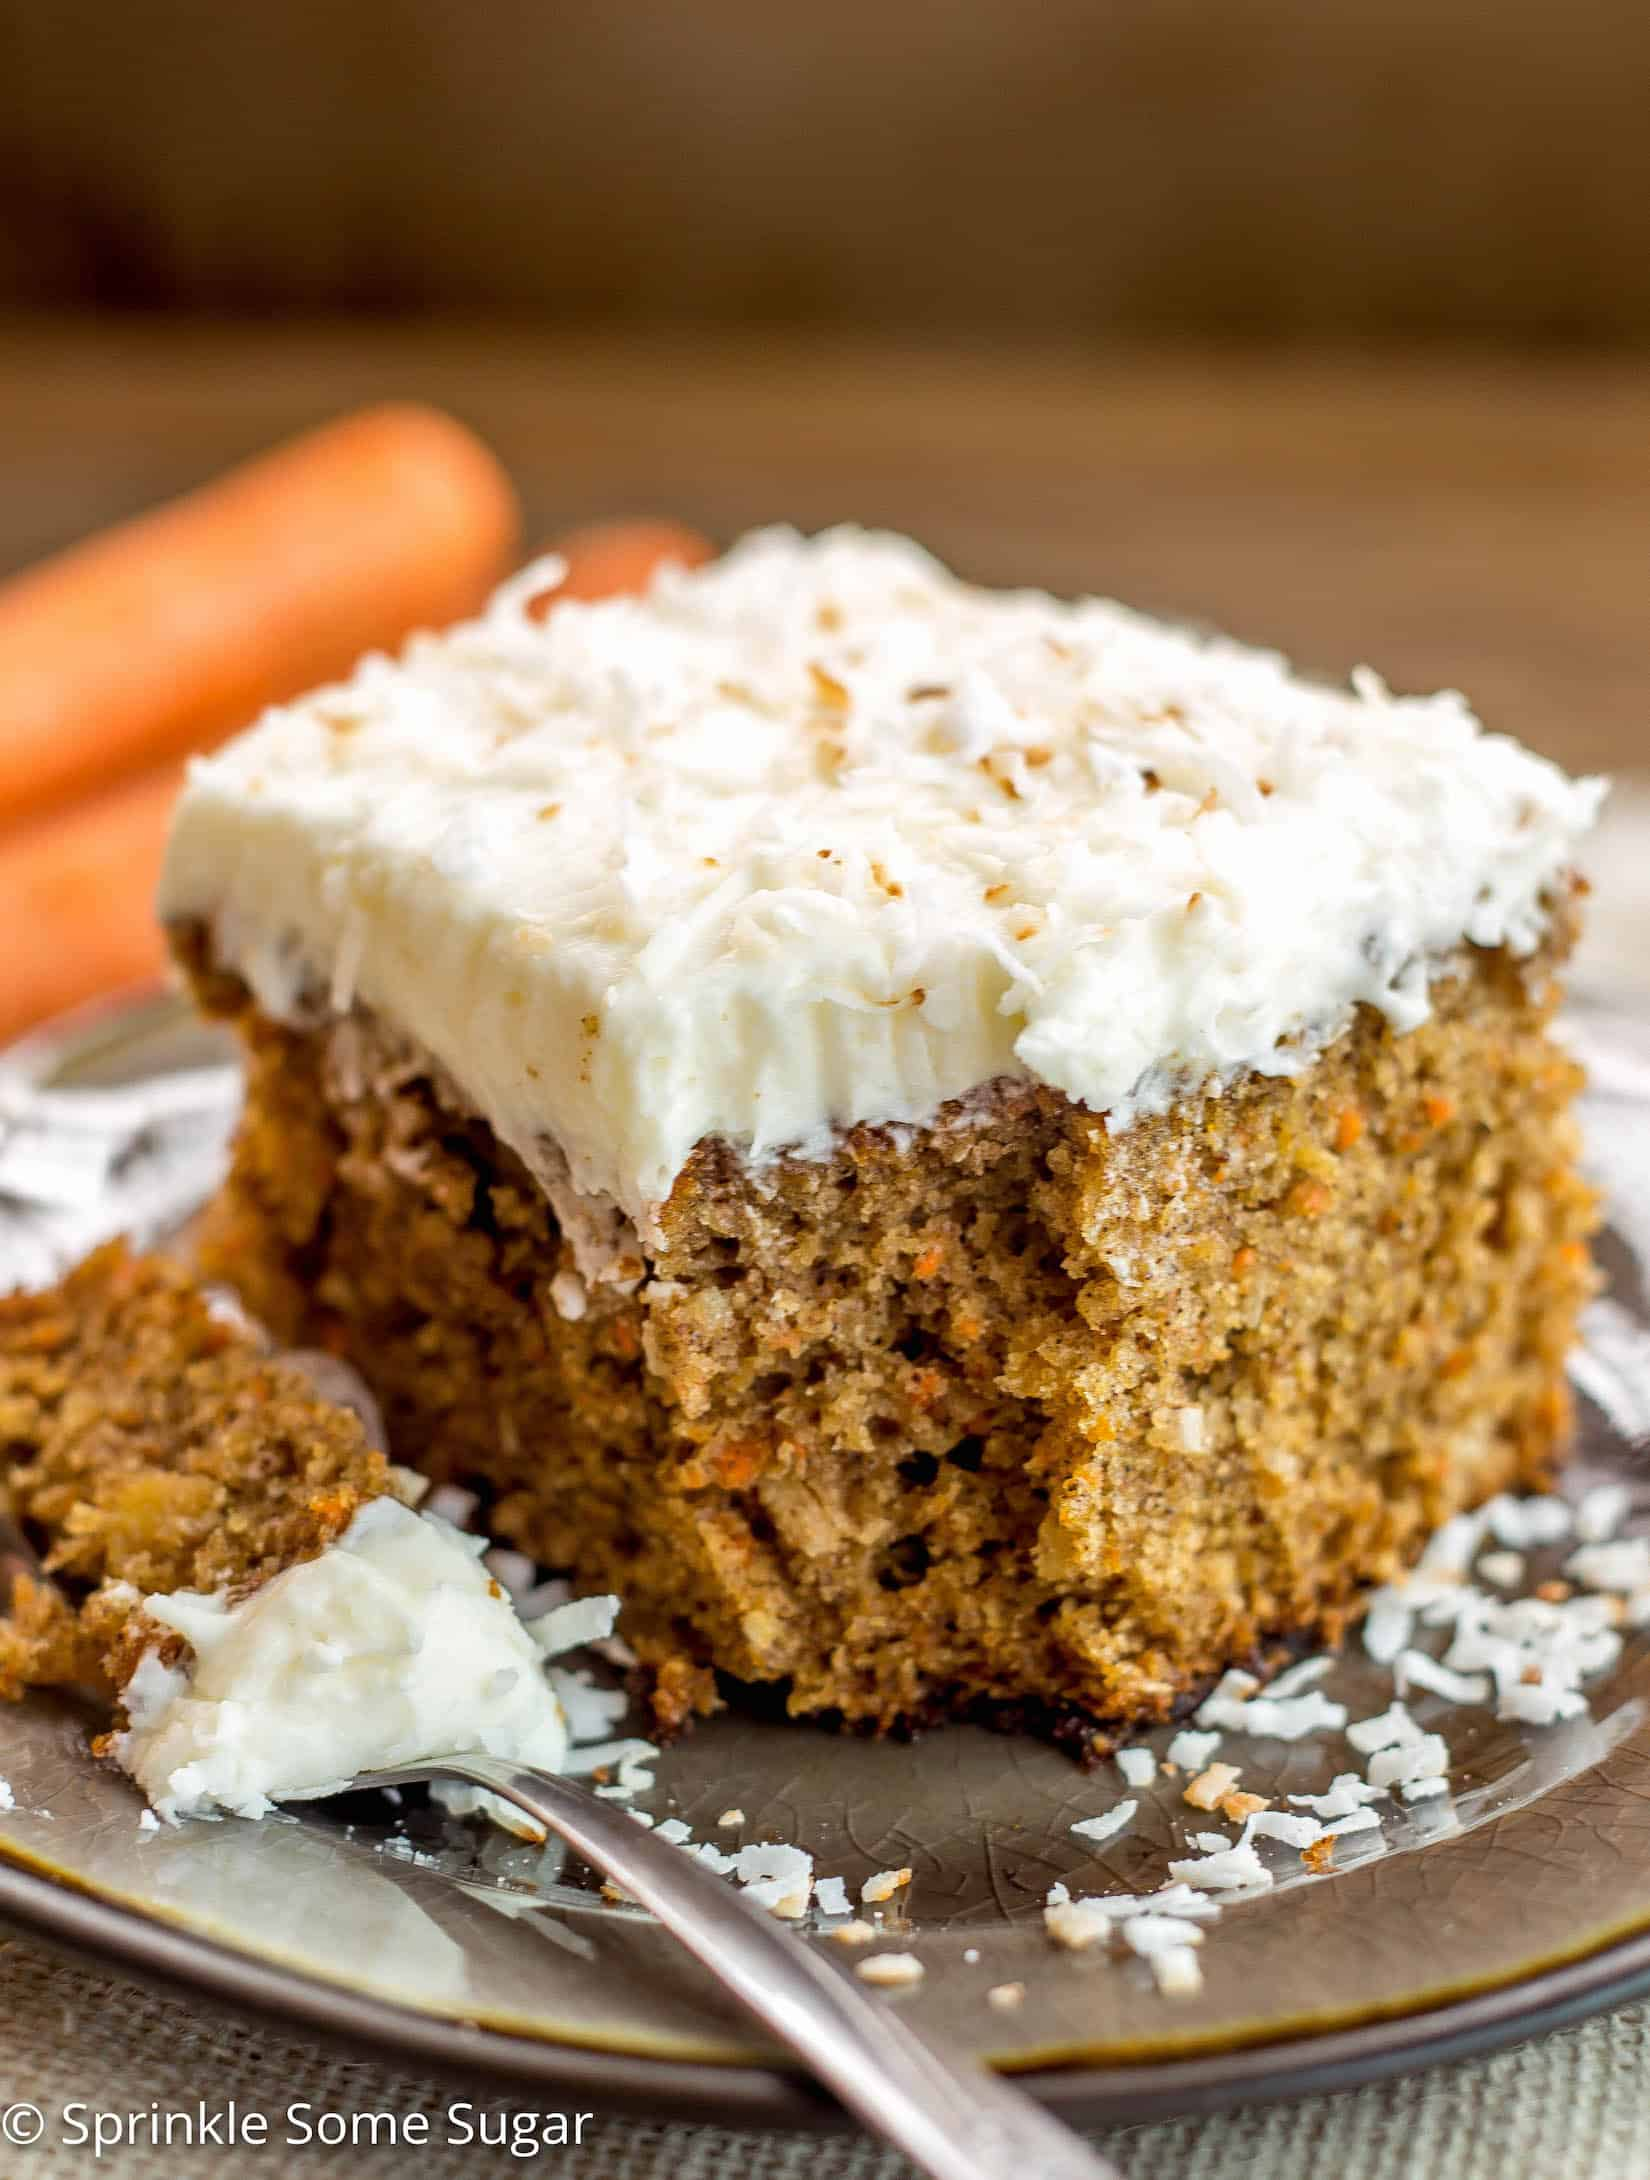 Pineapple Coconut Carrot Cake with Coconut Cream Cheese Frosting - This perfectly moist carrot cake is chock full of carrots, pineapple and coconut. Topped with hefty layer of my favorite coconut cream cheese frosting!